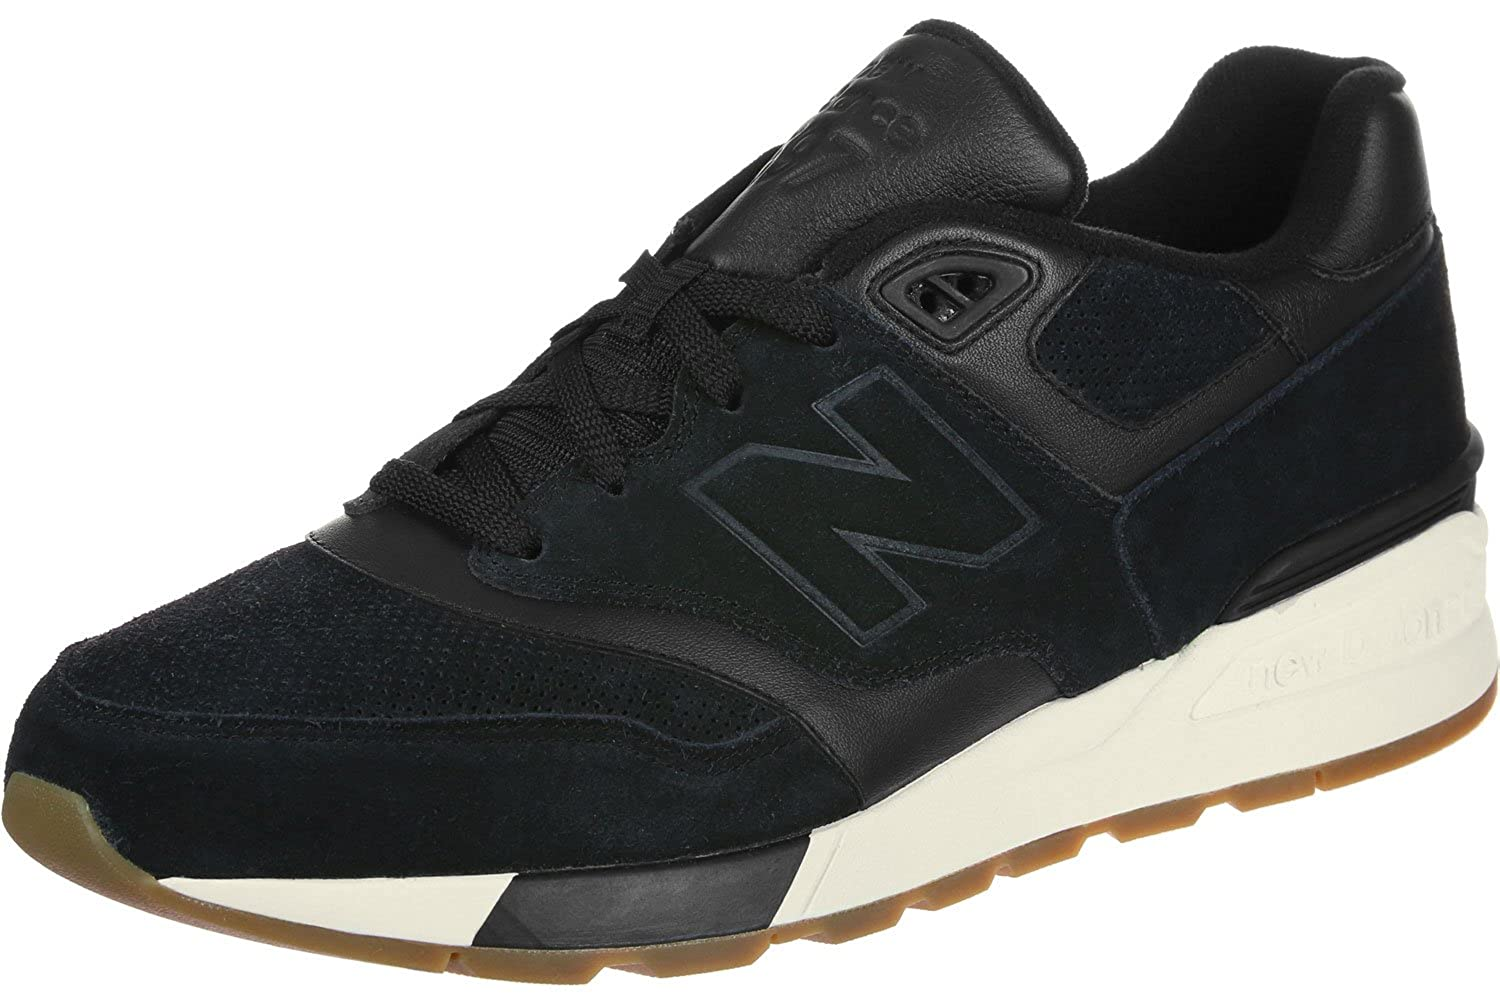 New Balance 597 salon